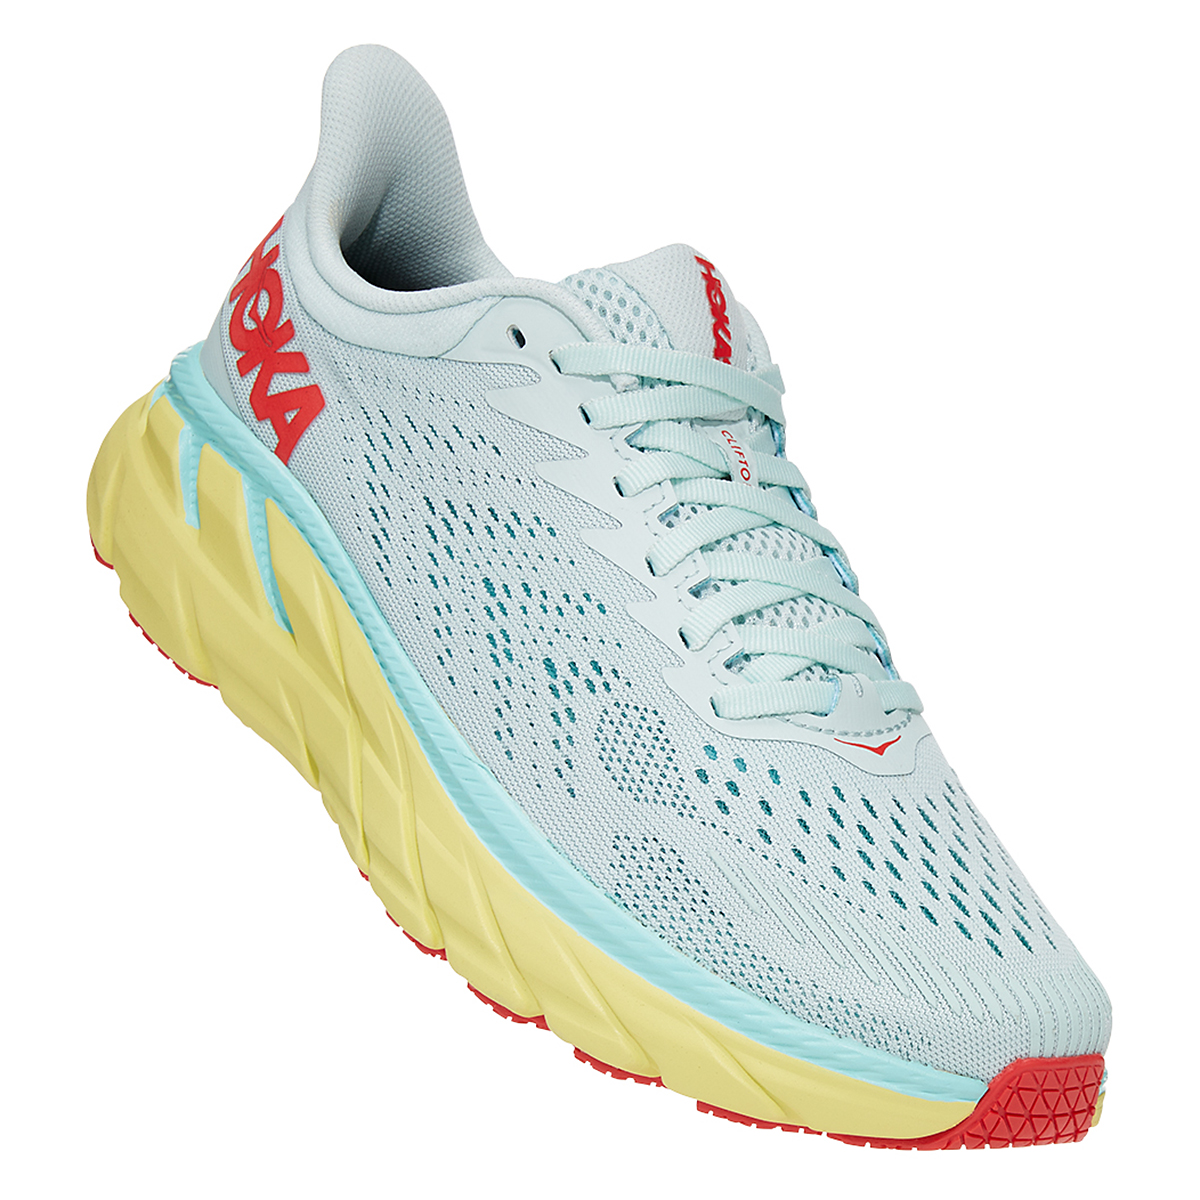 Women's Hoka One One Clifton 7 Running Shoe - Color: Morning Mist/Hot Coral - Size: 5 - Width: Regular, Morning Mist/Hot Coral, large, image 2